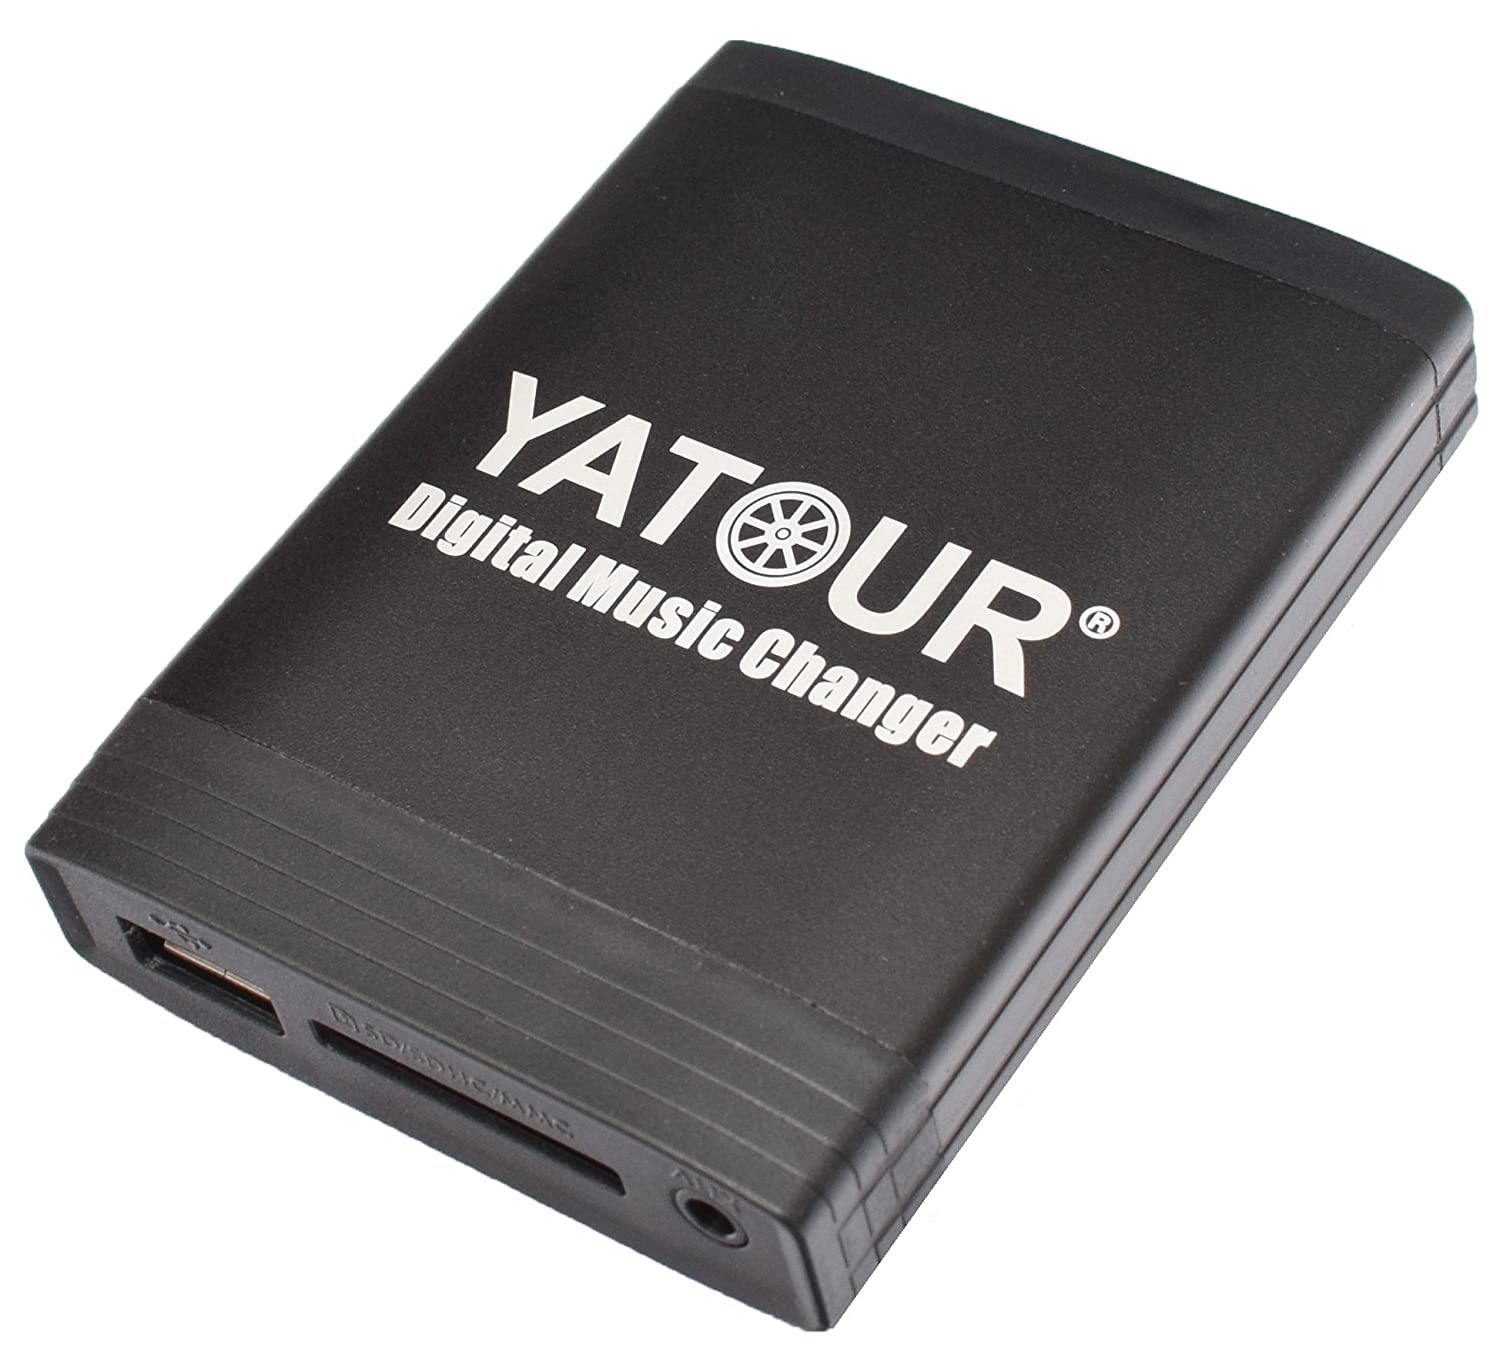 Yatour YTM06-HON2 USB SD AUX MP3 Adapter Charger for Honda Accord CL/ CM /CN / Civic EP/FK/FN, CR-V 01-06 / Jazz GD / GE YT-M06